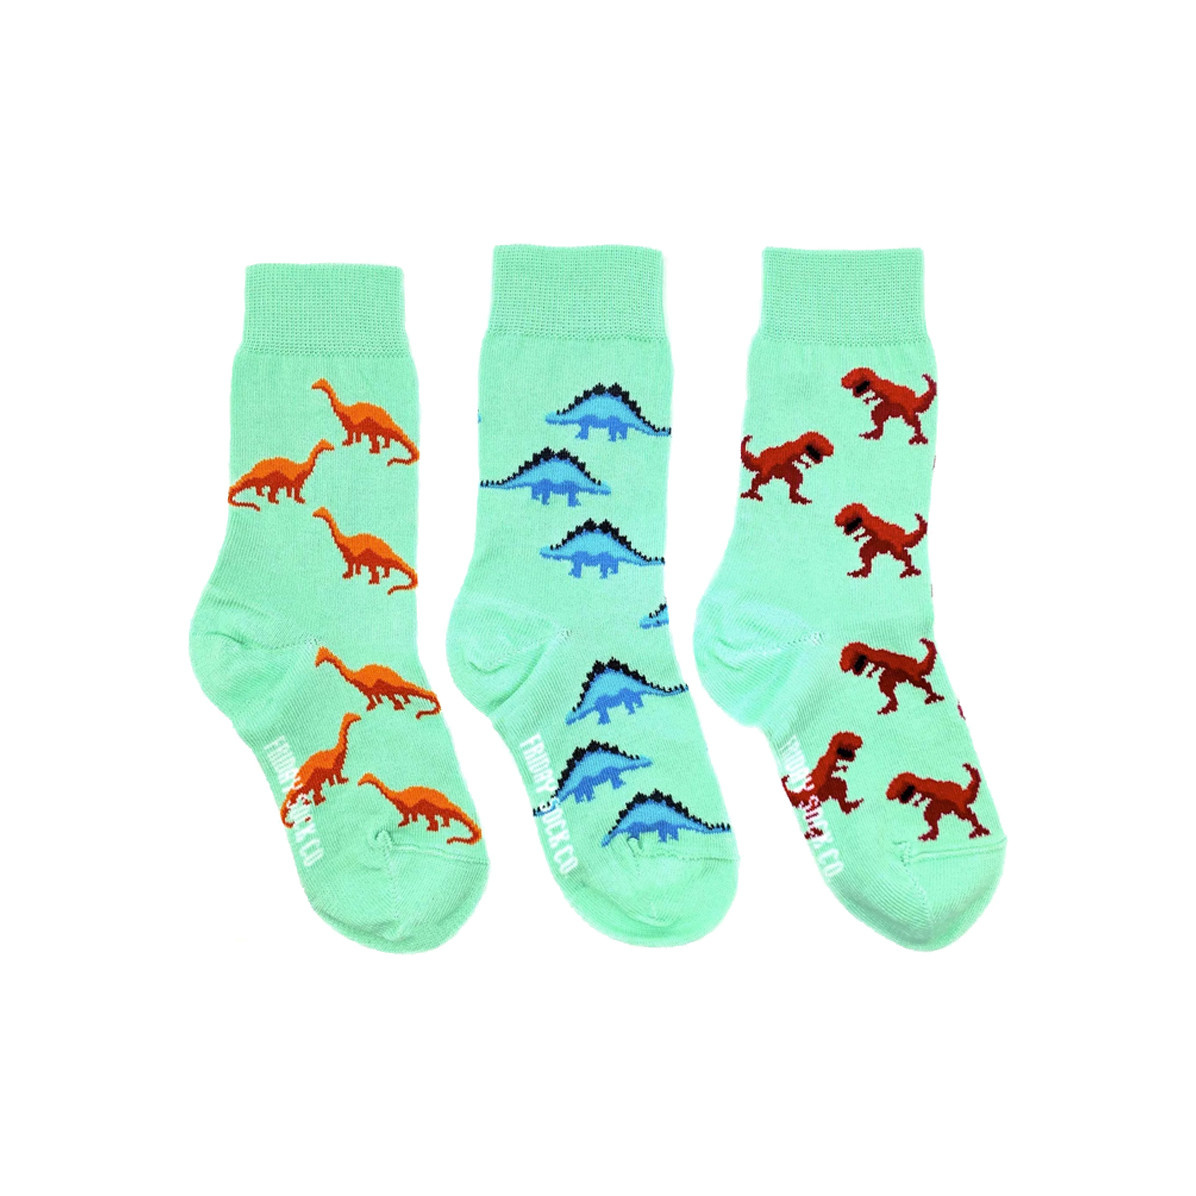 Friday Sock Co. Friday Sock Co. Kids Dino Crew